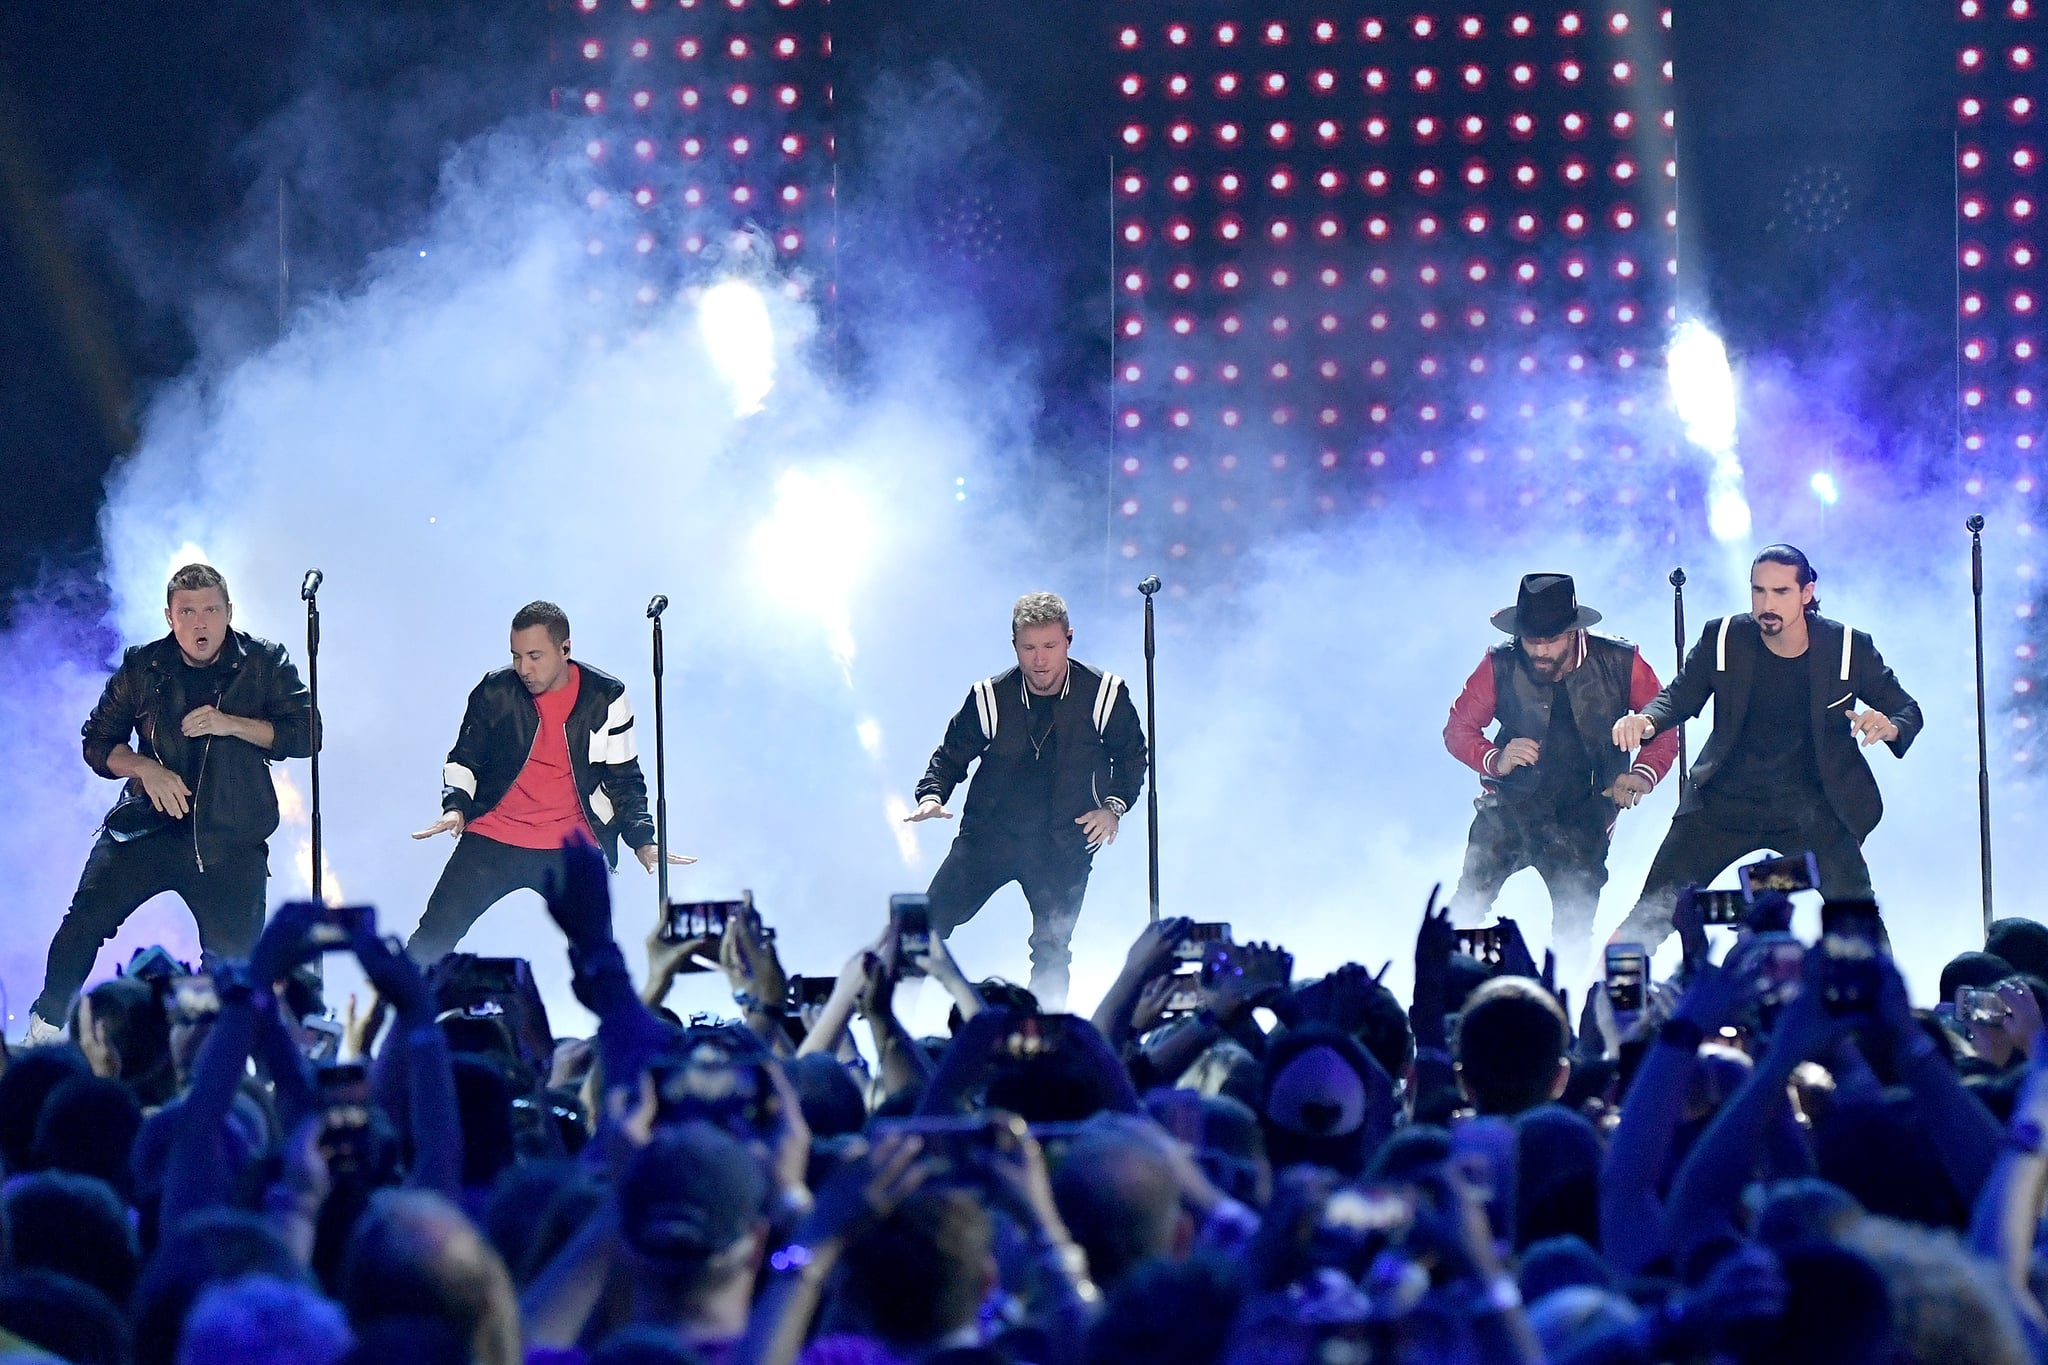 NASHVILLE, TN - JUNE 06:  (L-R) Nick Carter, Howie Dorough, Brian Littrell, AJ McLean and Kevin Richardson of Backstreet Boys perform onstage at the 2018 CMT Music Awards at Bridgestone Arena on June 6, 2018 in Nashville, Tennessee.  (Photo by Mike Coppola/Getty Images for CMT)